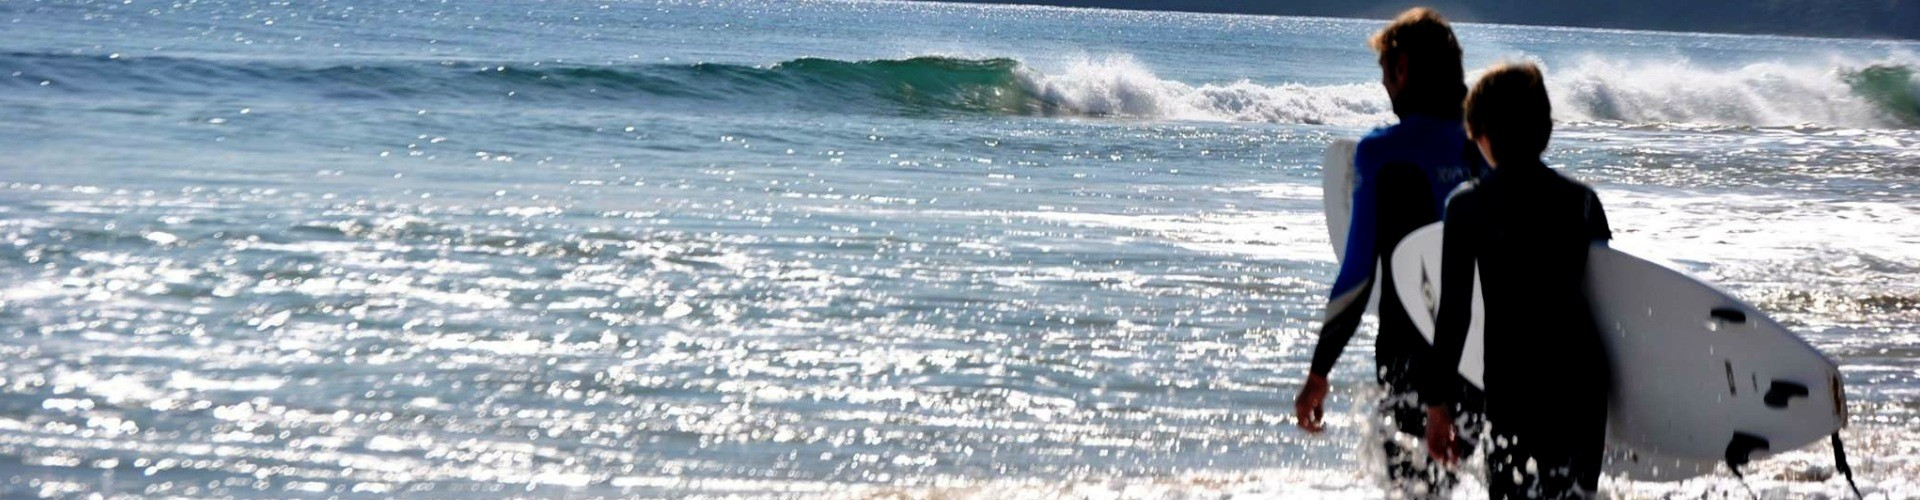 """Surf Experience in Porto Santo, Madeira"